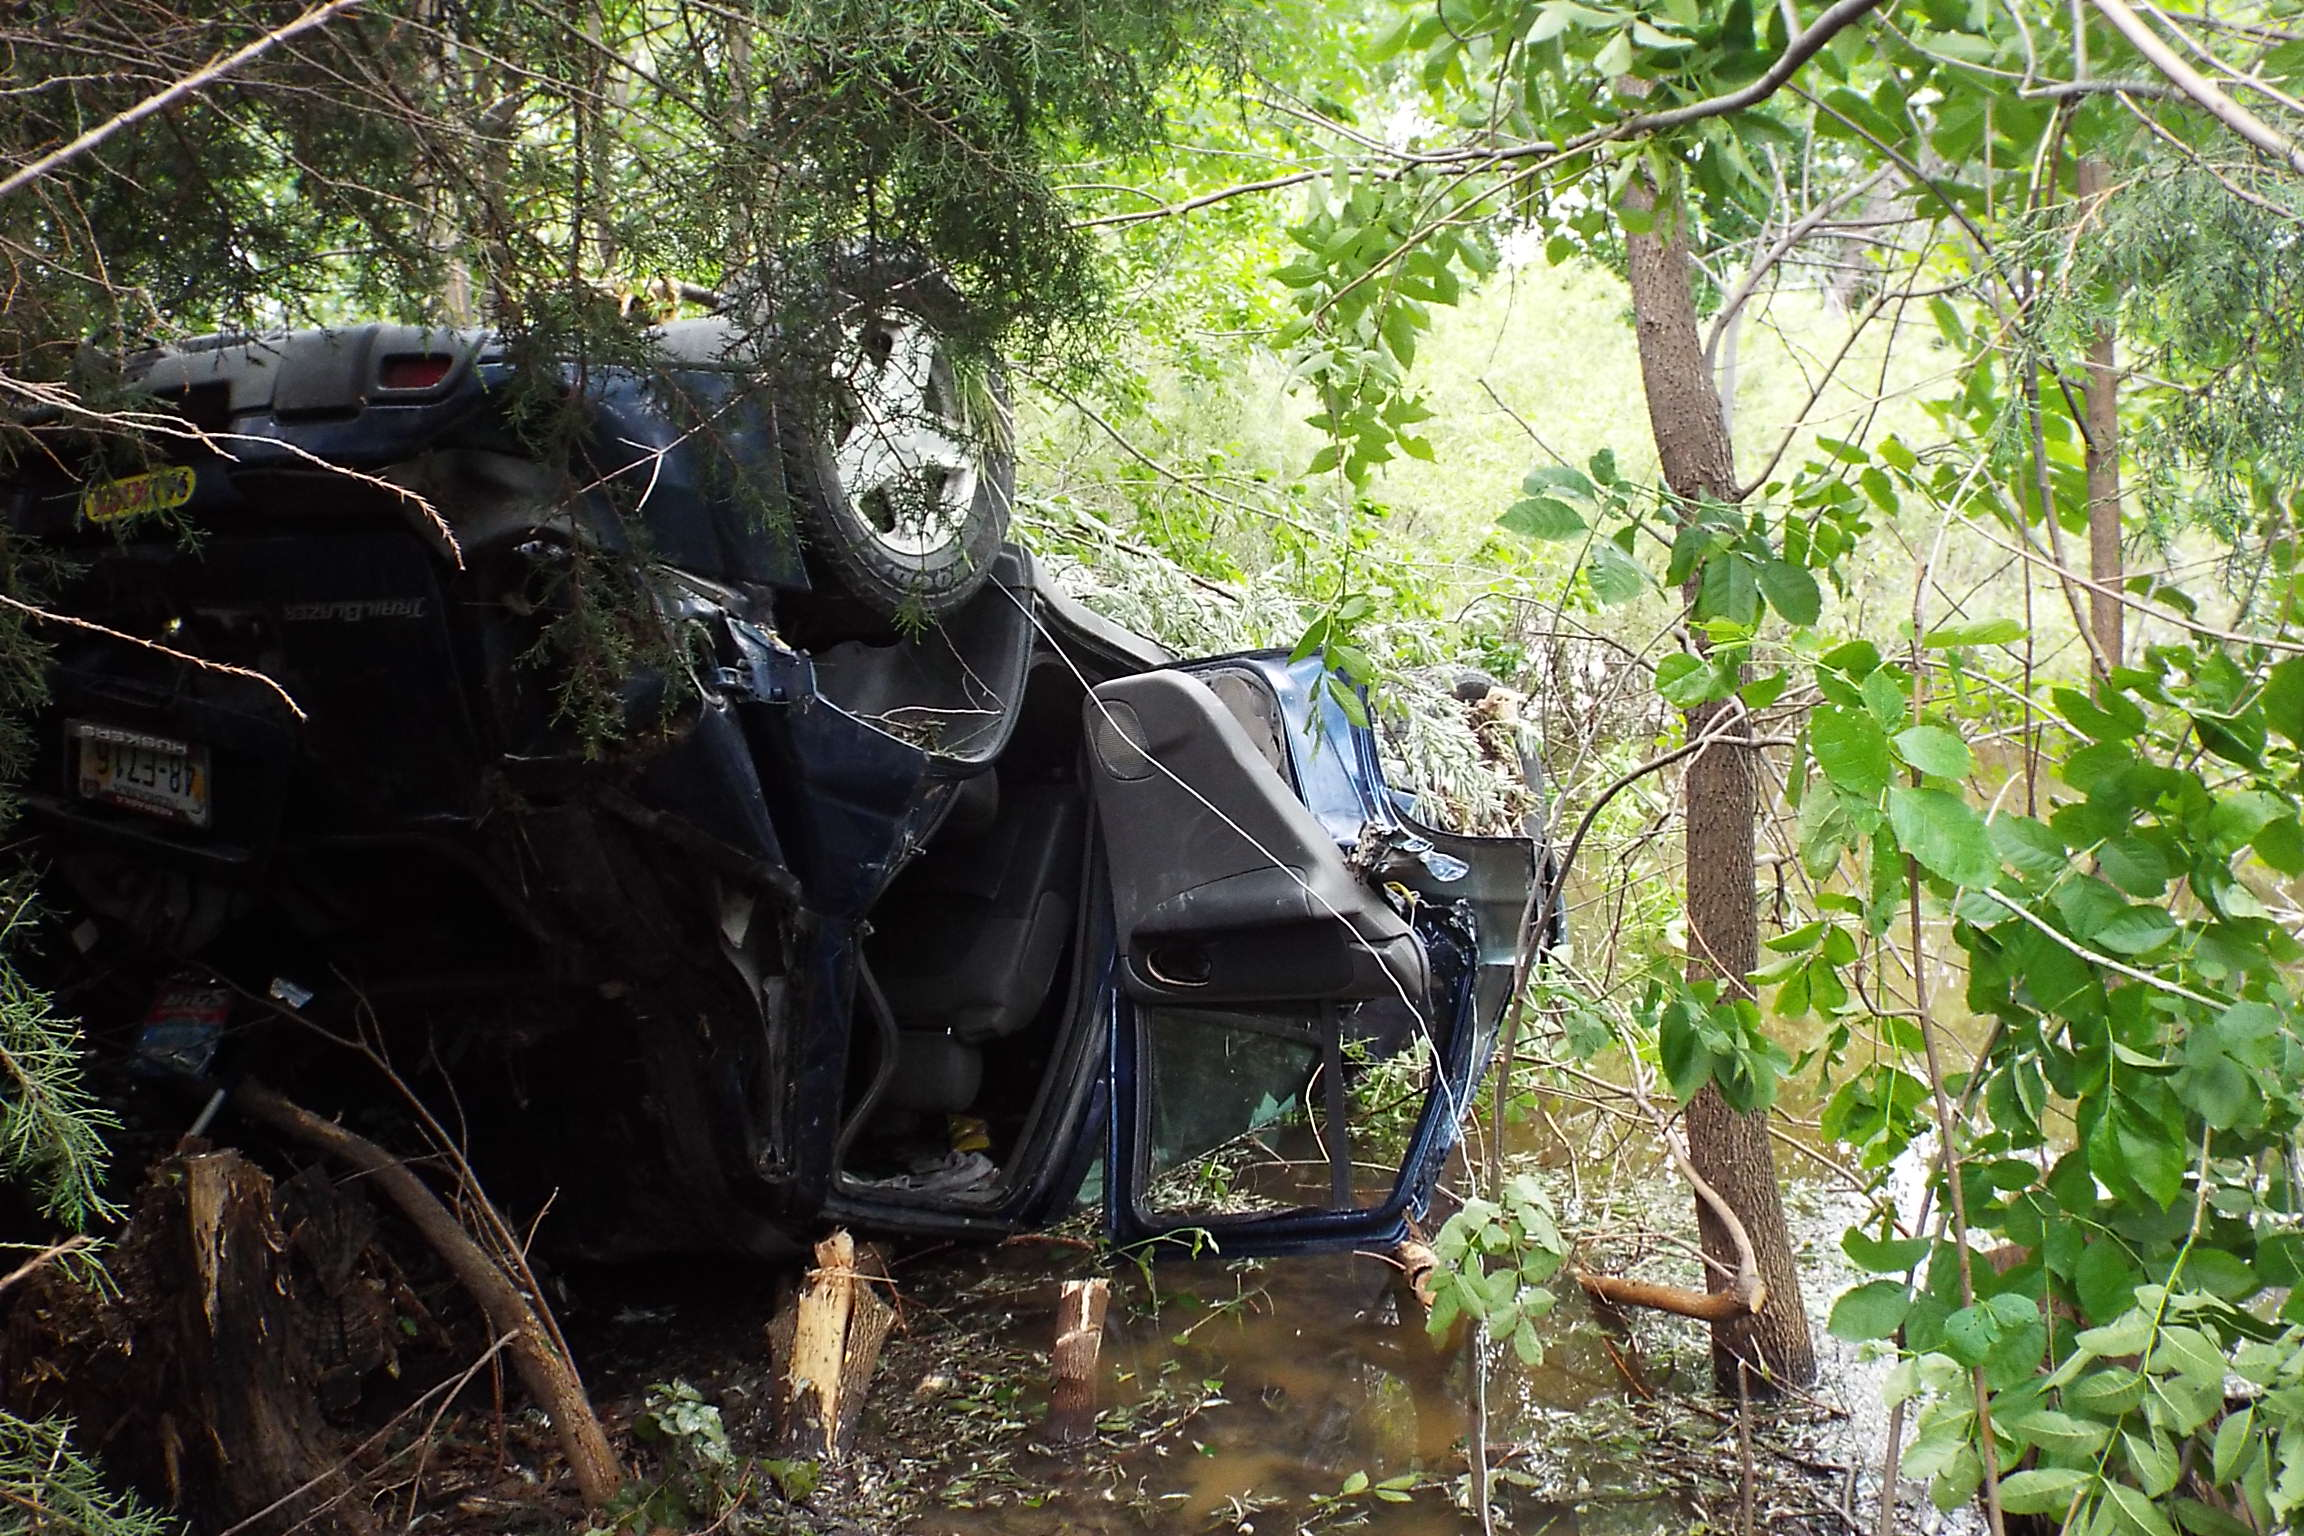 SUV Crashes Into Water In Ditch